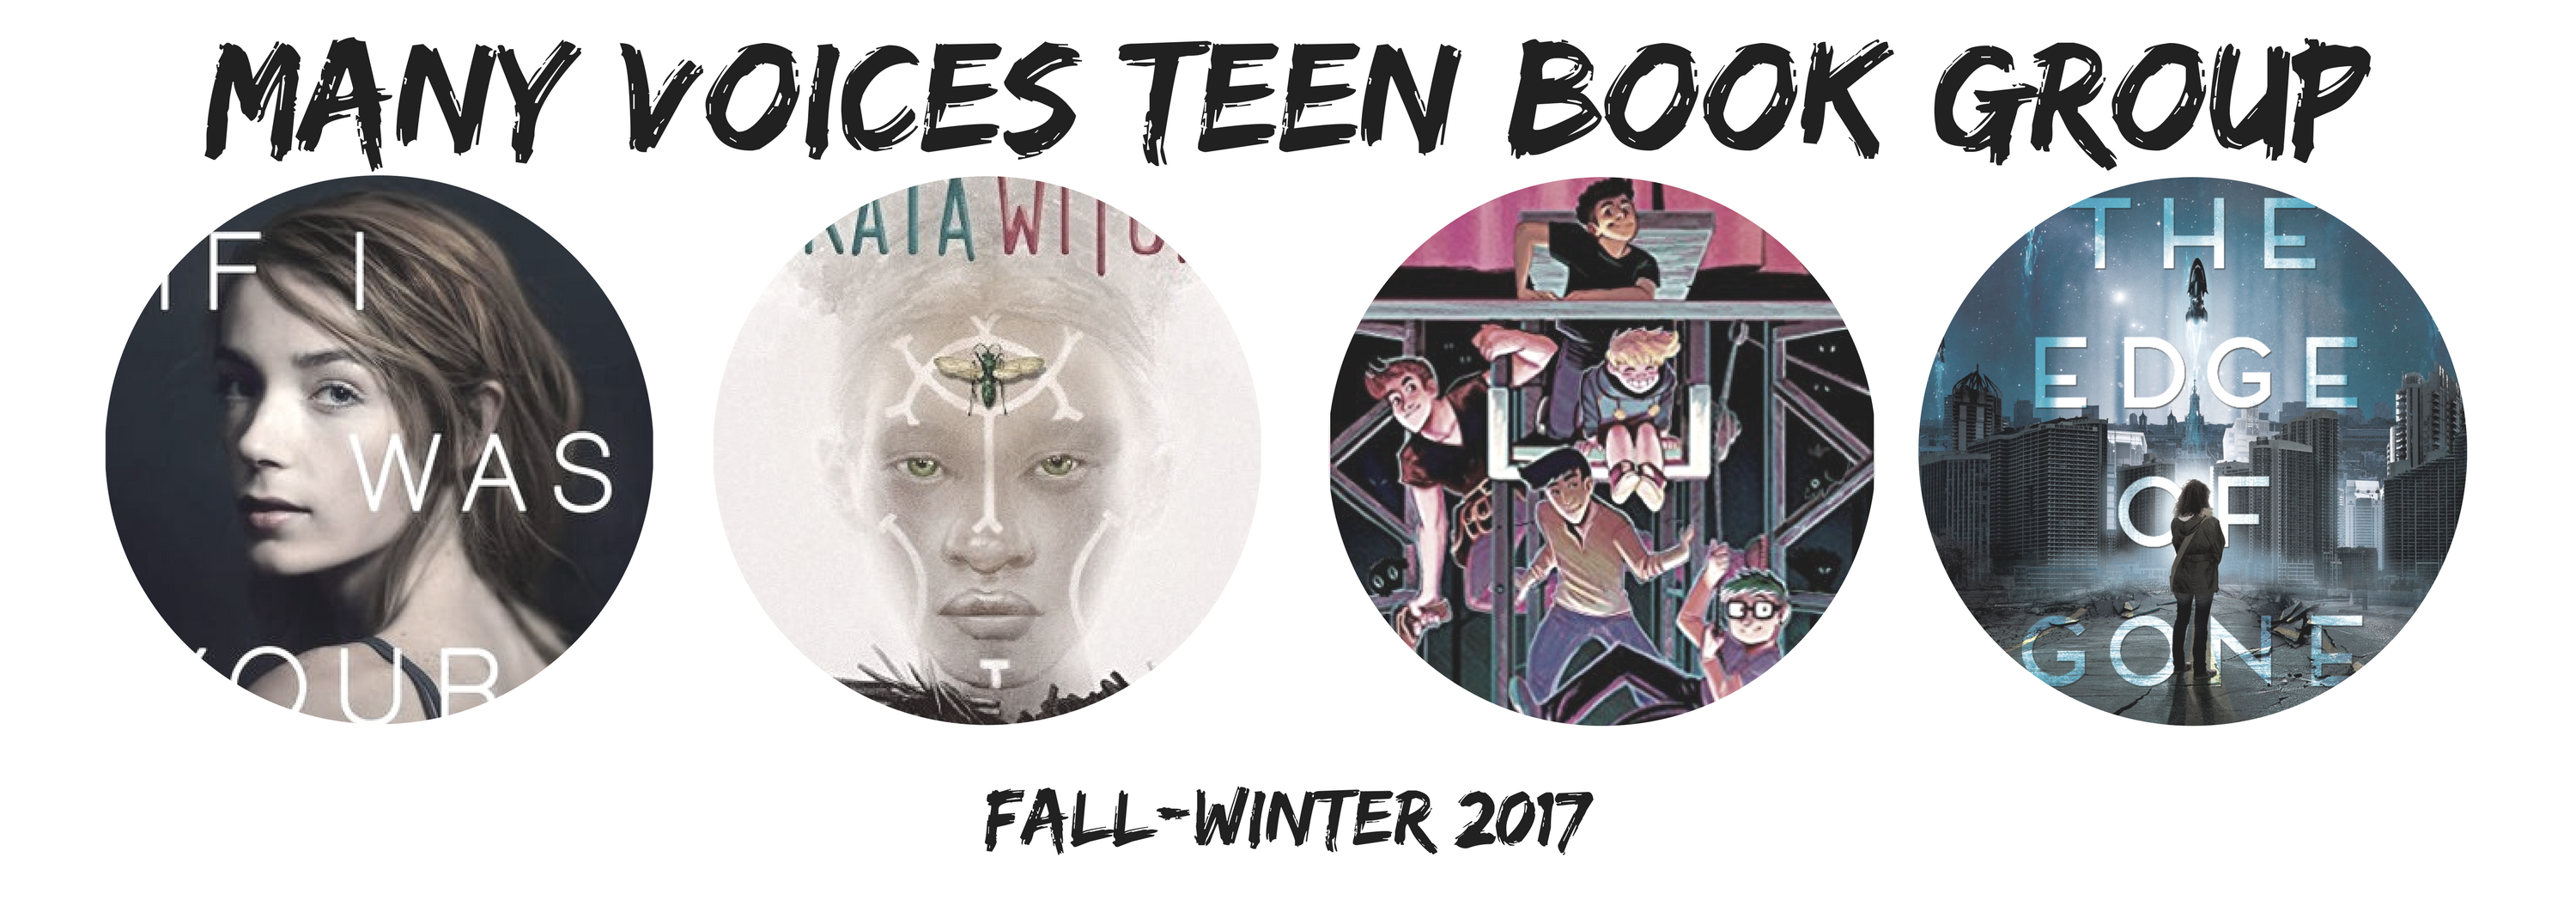 "Banner reading ""Many Voices Teen Book Group, Fall-Winter 2017"" with images of 4 book covers"